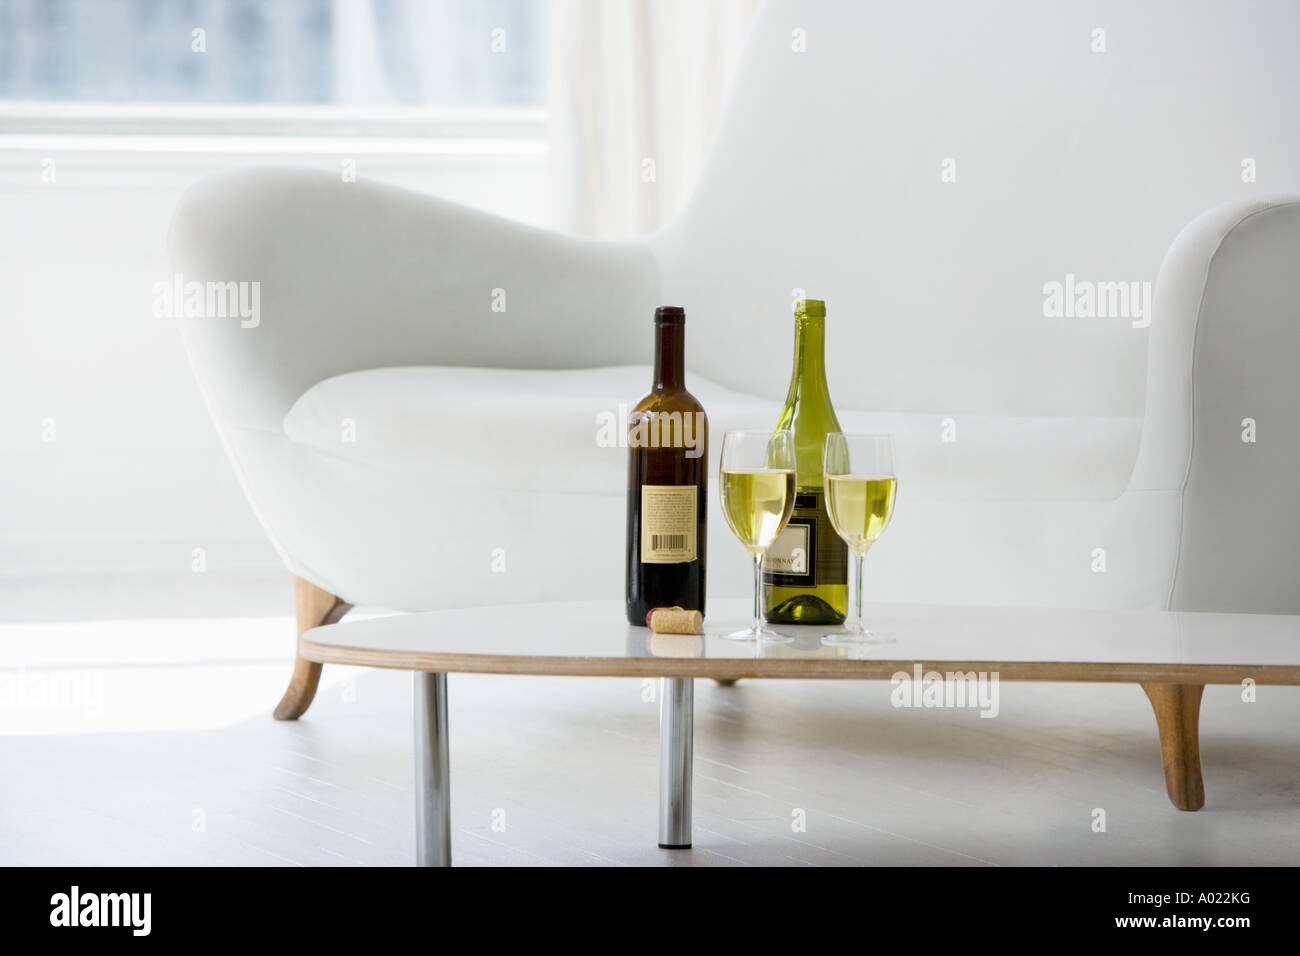 Enjoyable Wine Glasses And Bottles On Coffee Table In Living Room Alphanode Cool Chair Designs And Ideas Alphanodeonline